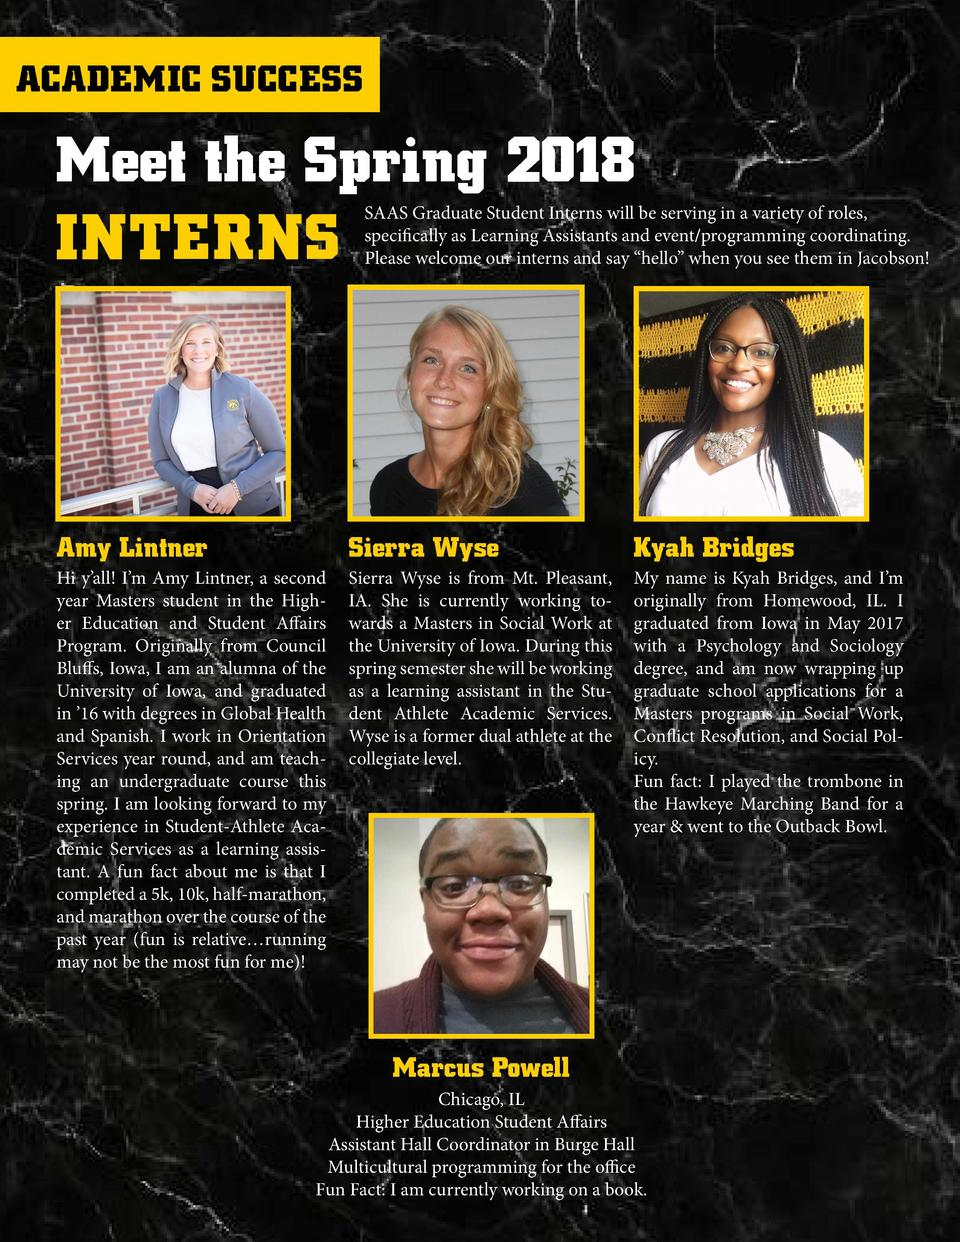 ACADEMIC SUCCESS  Meet the Spring 2018 INTERNS  SAAS Graduate Student Interns will be serving in a variety of roles, speci...